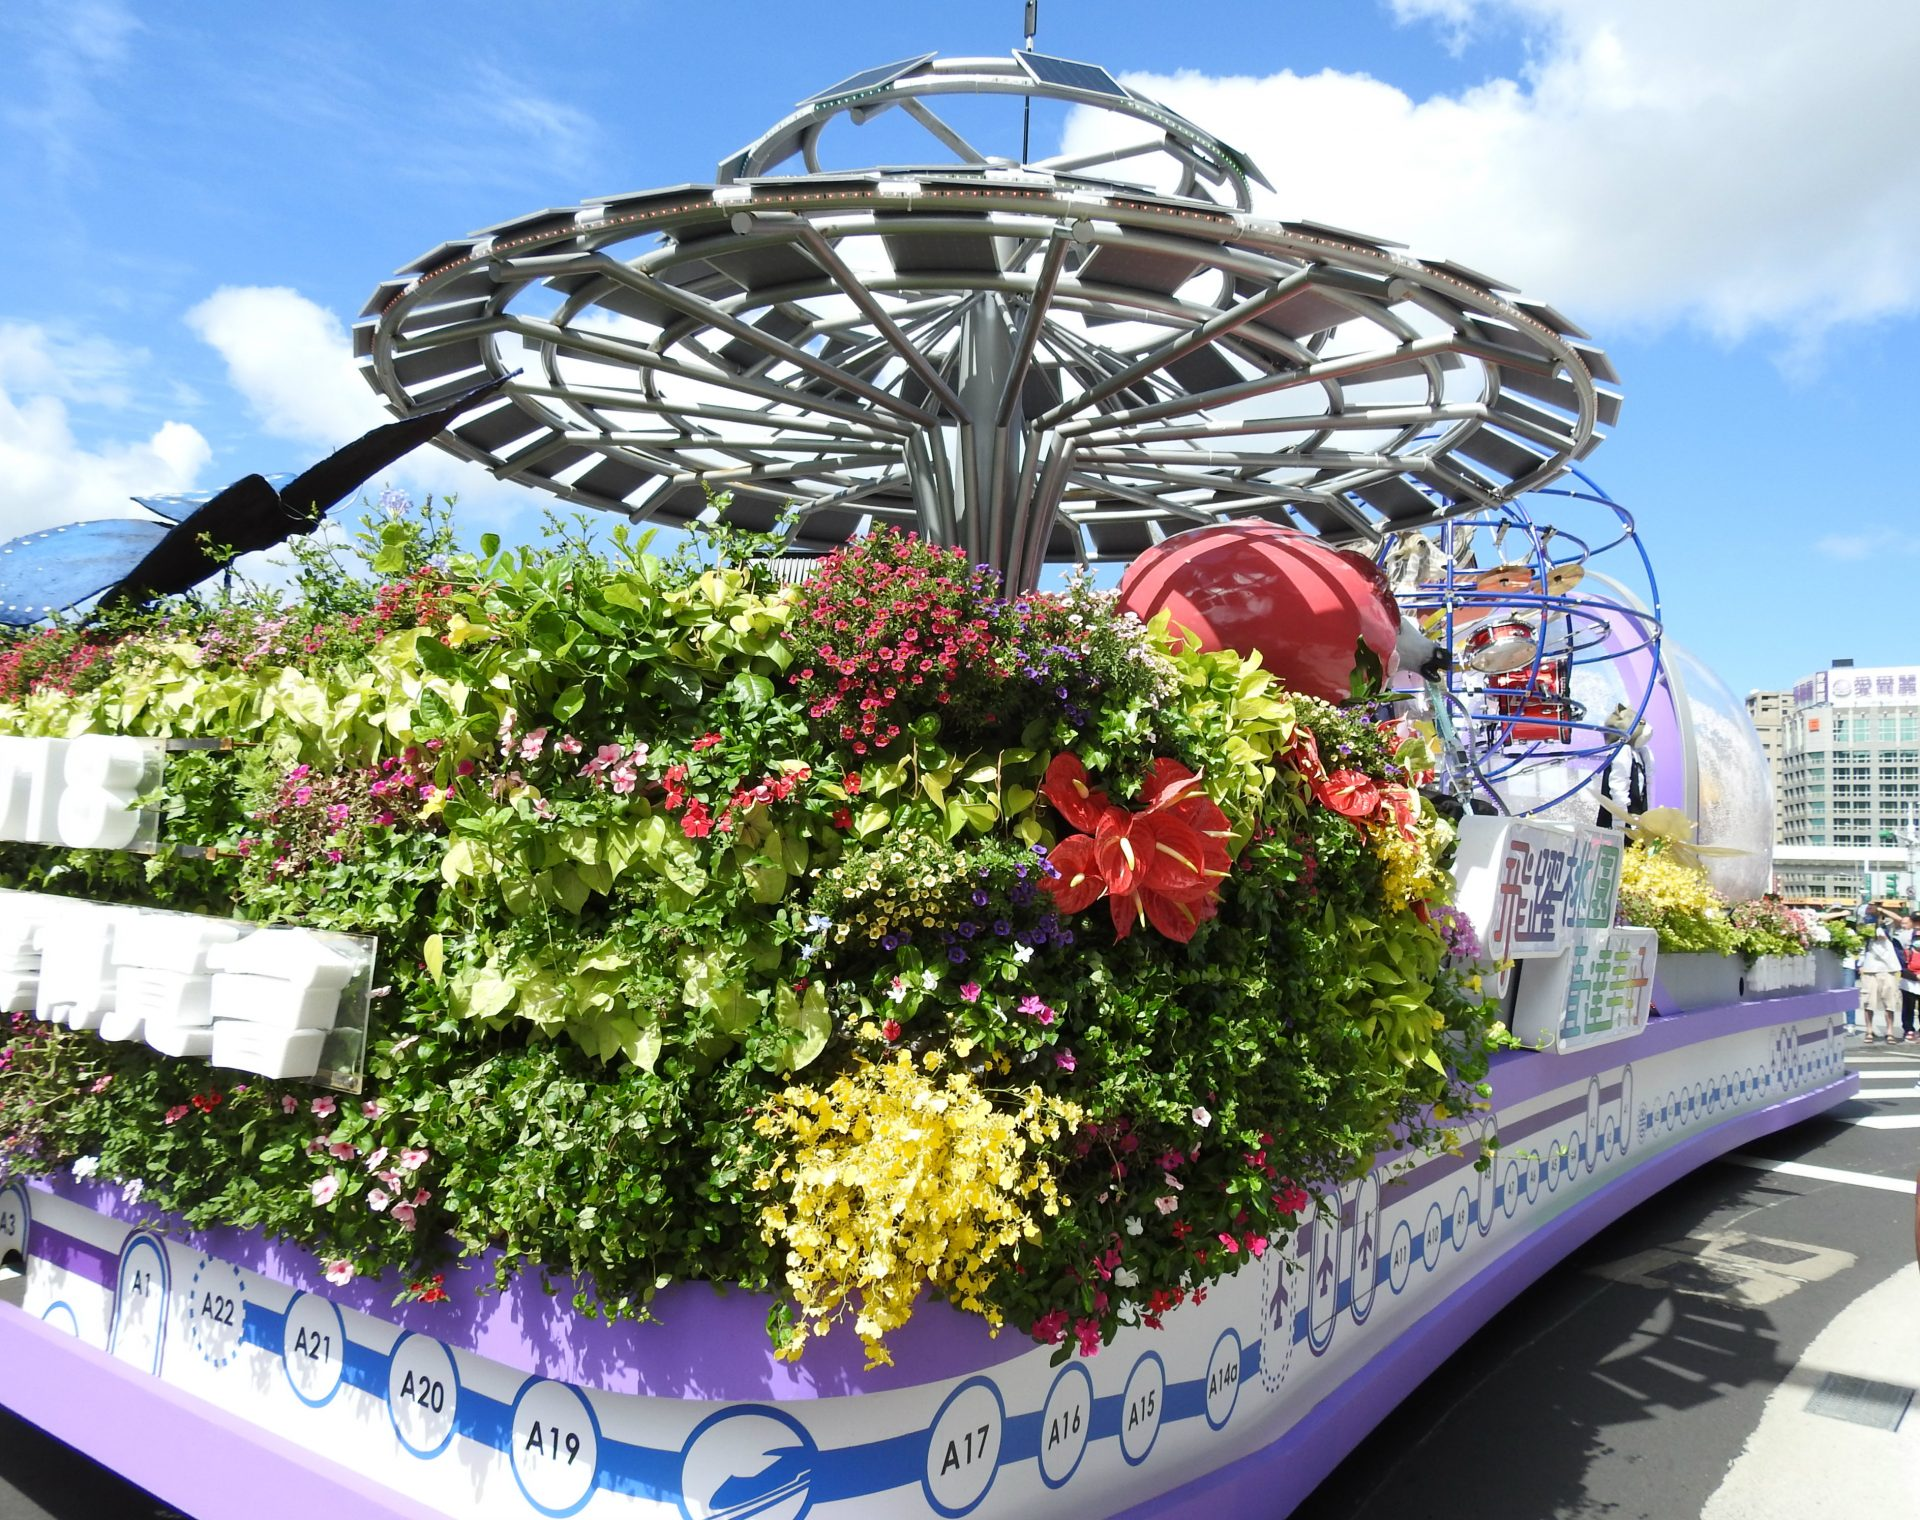 The Taoyuan City Government creates a float showing off its new Airport MRT and the Asia Silicon Valley Plan. (Image: Billy Shyu/ Vision Times)